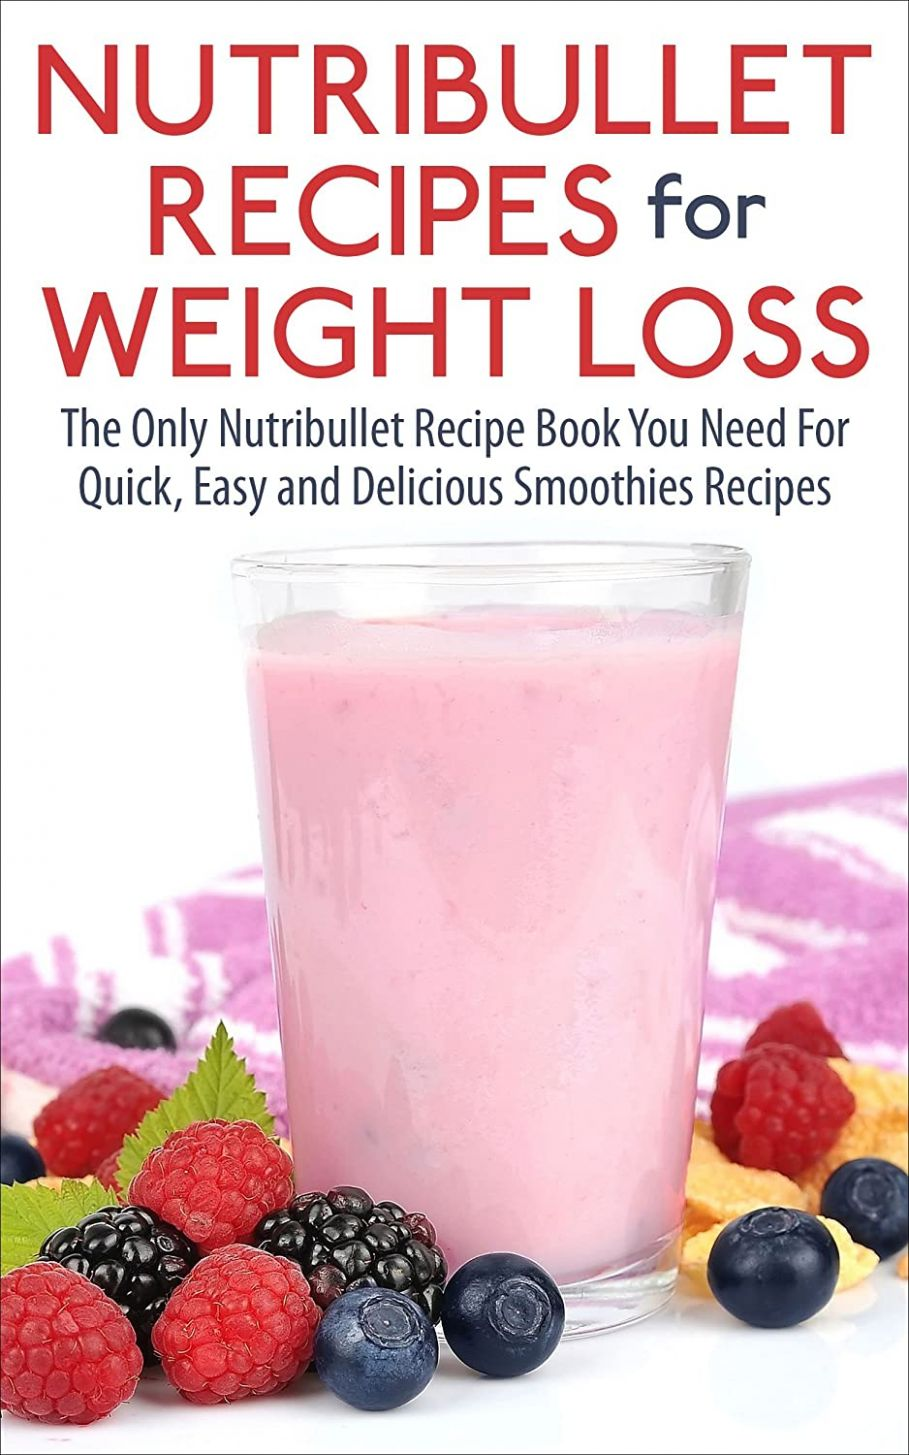 Nutribullet Recipes For Weight Loss: The Only Nutribullet Recipe ...